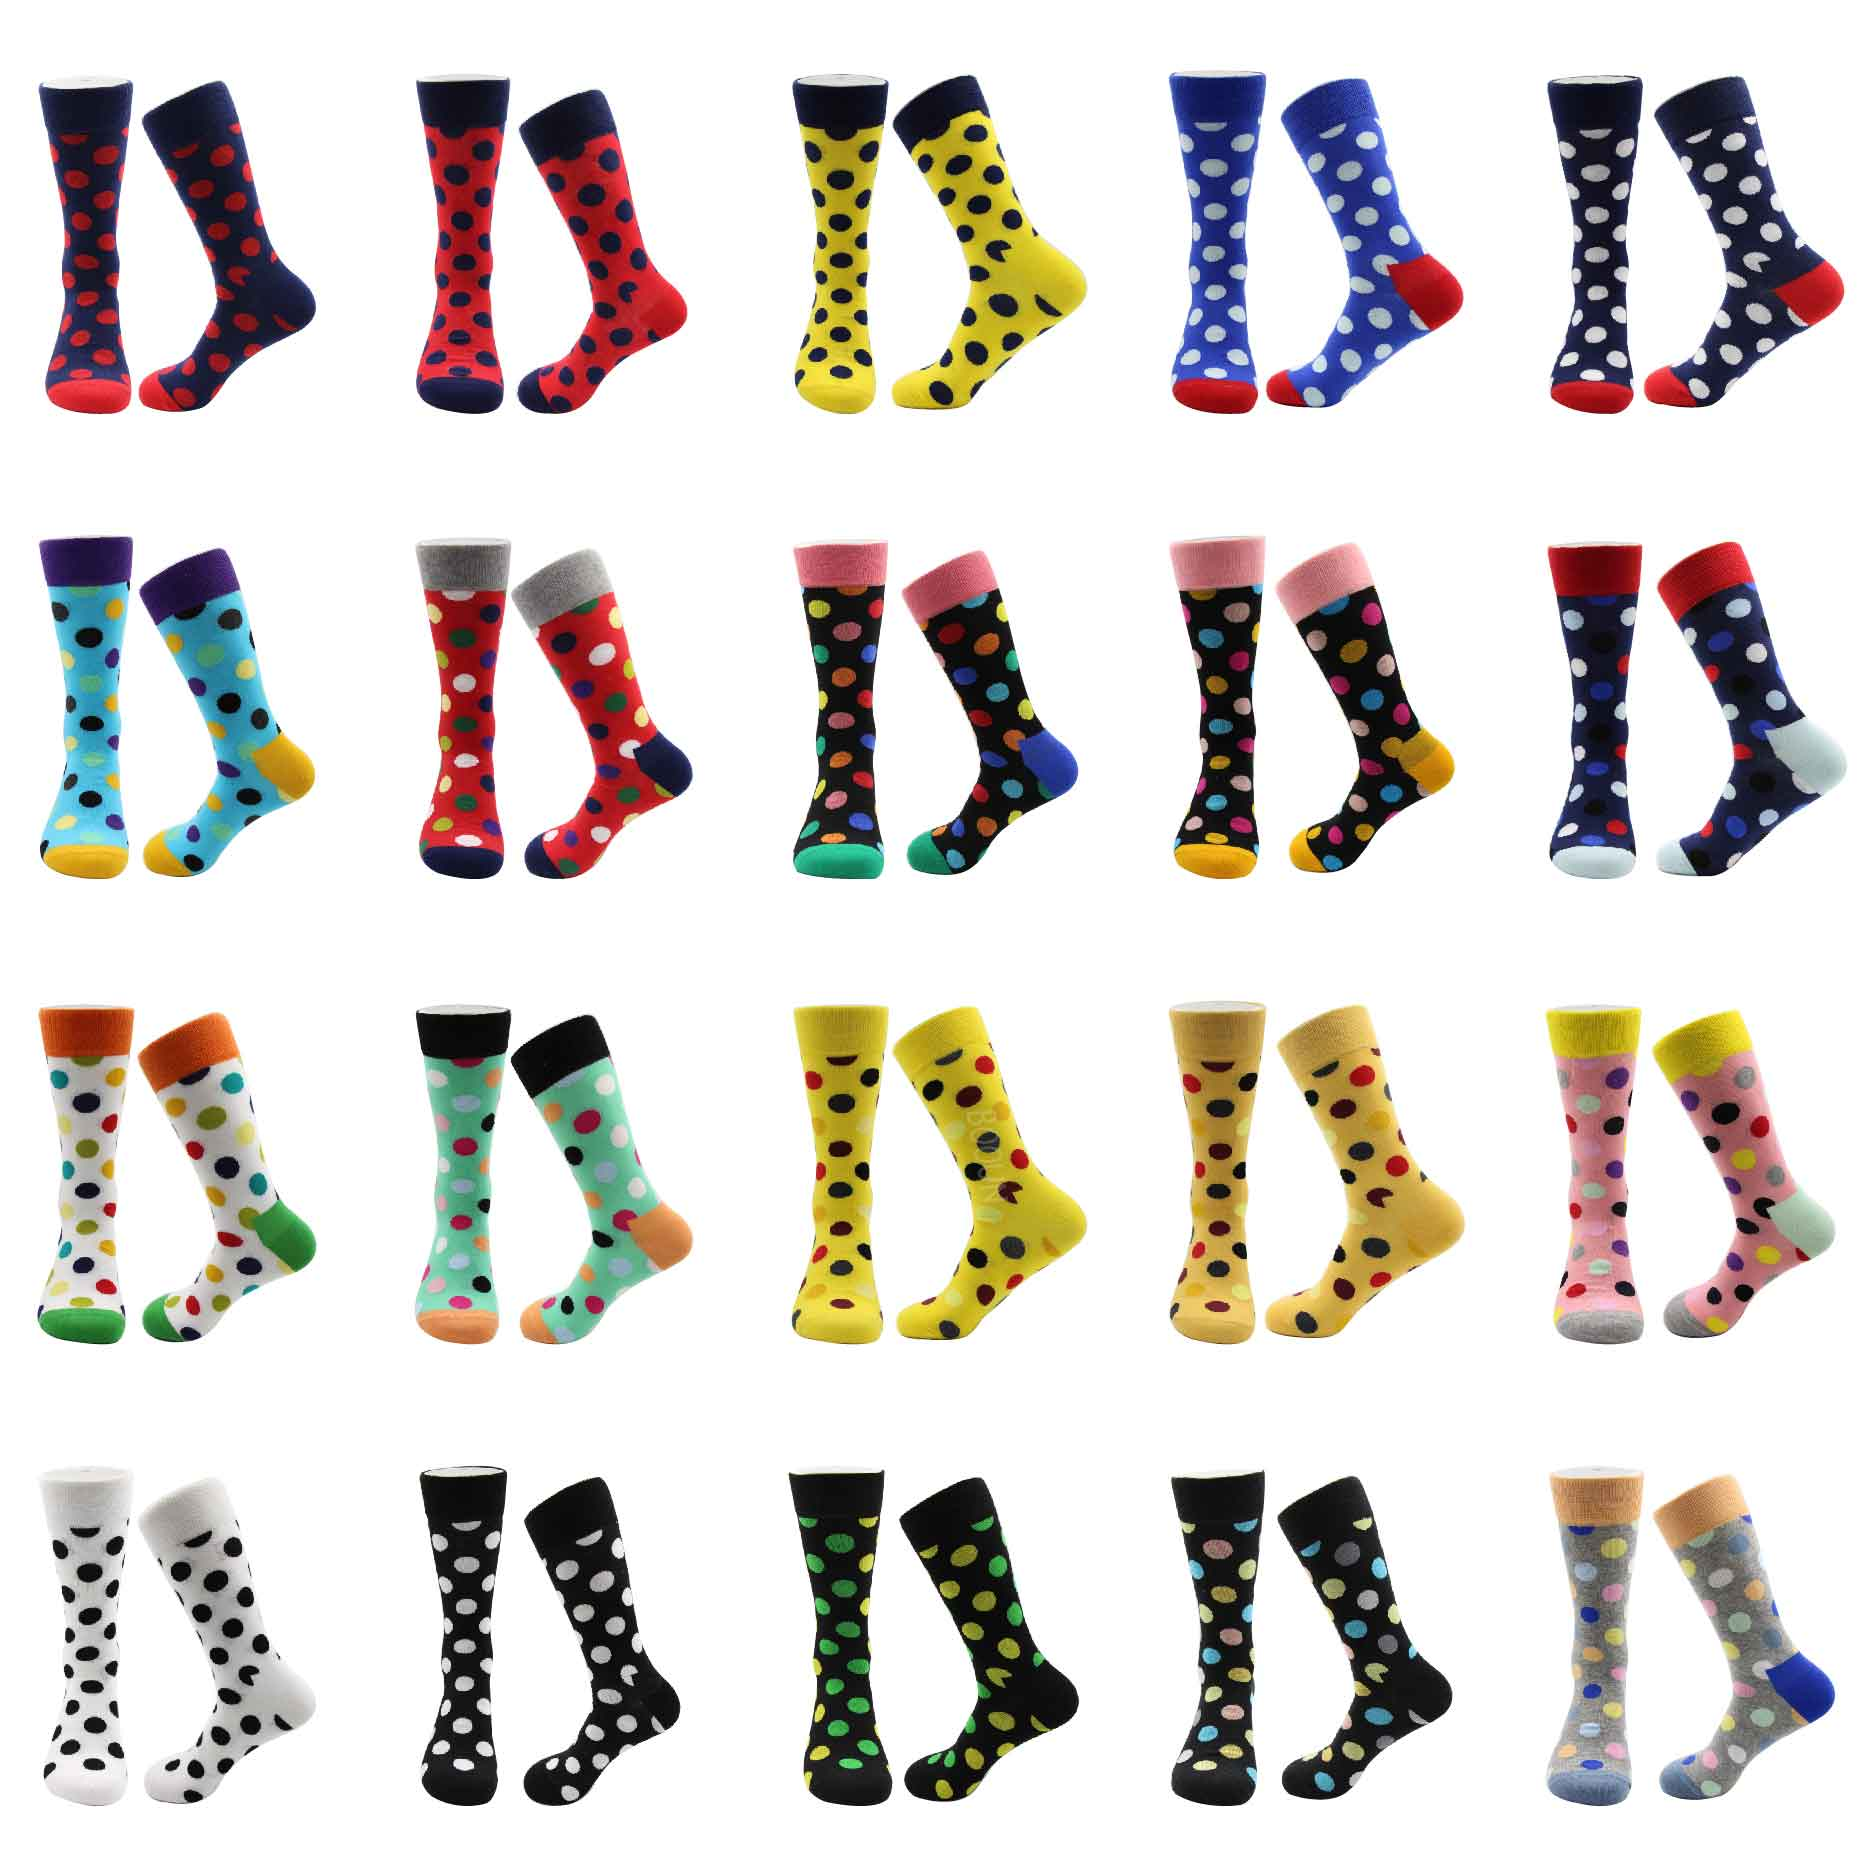 Happy   socks   couple combed cotton stocks Colourful dot pattern hip hop the best gift style funny tidal current